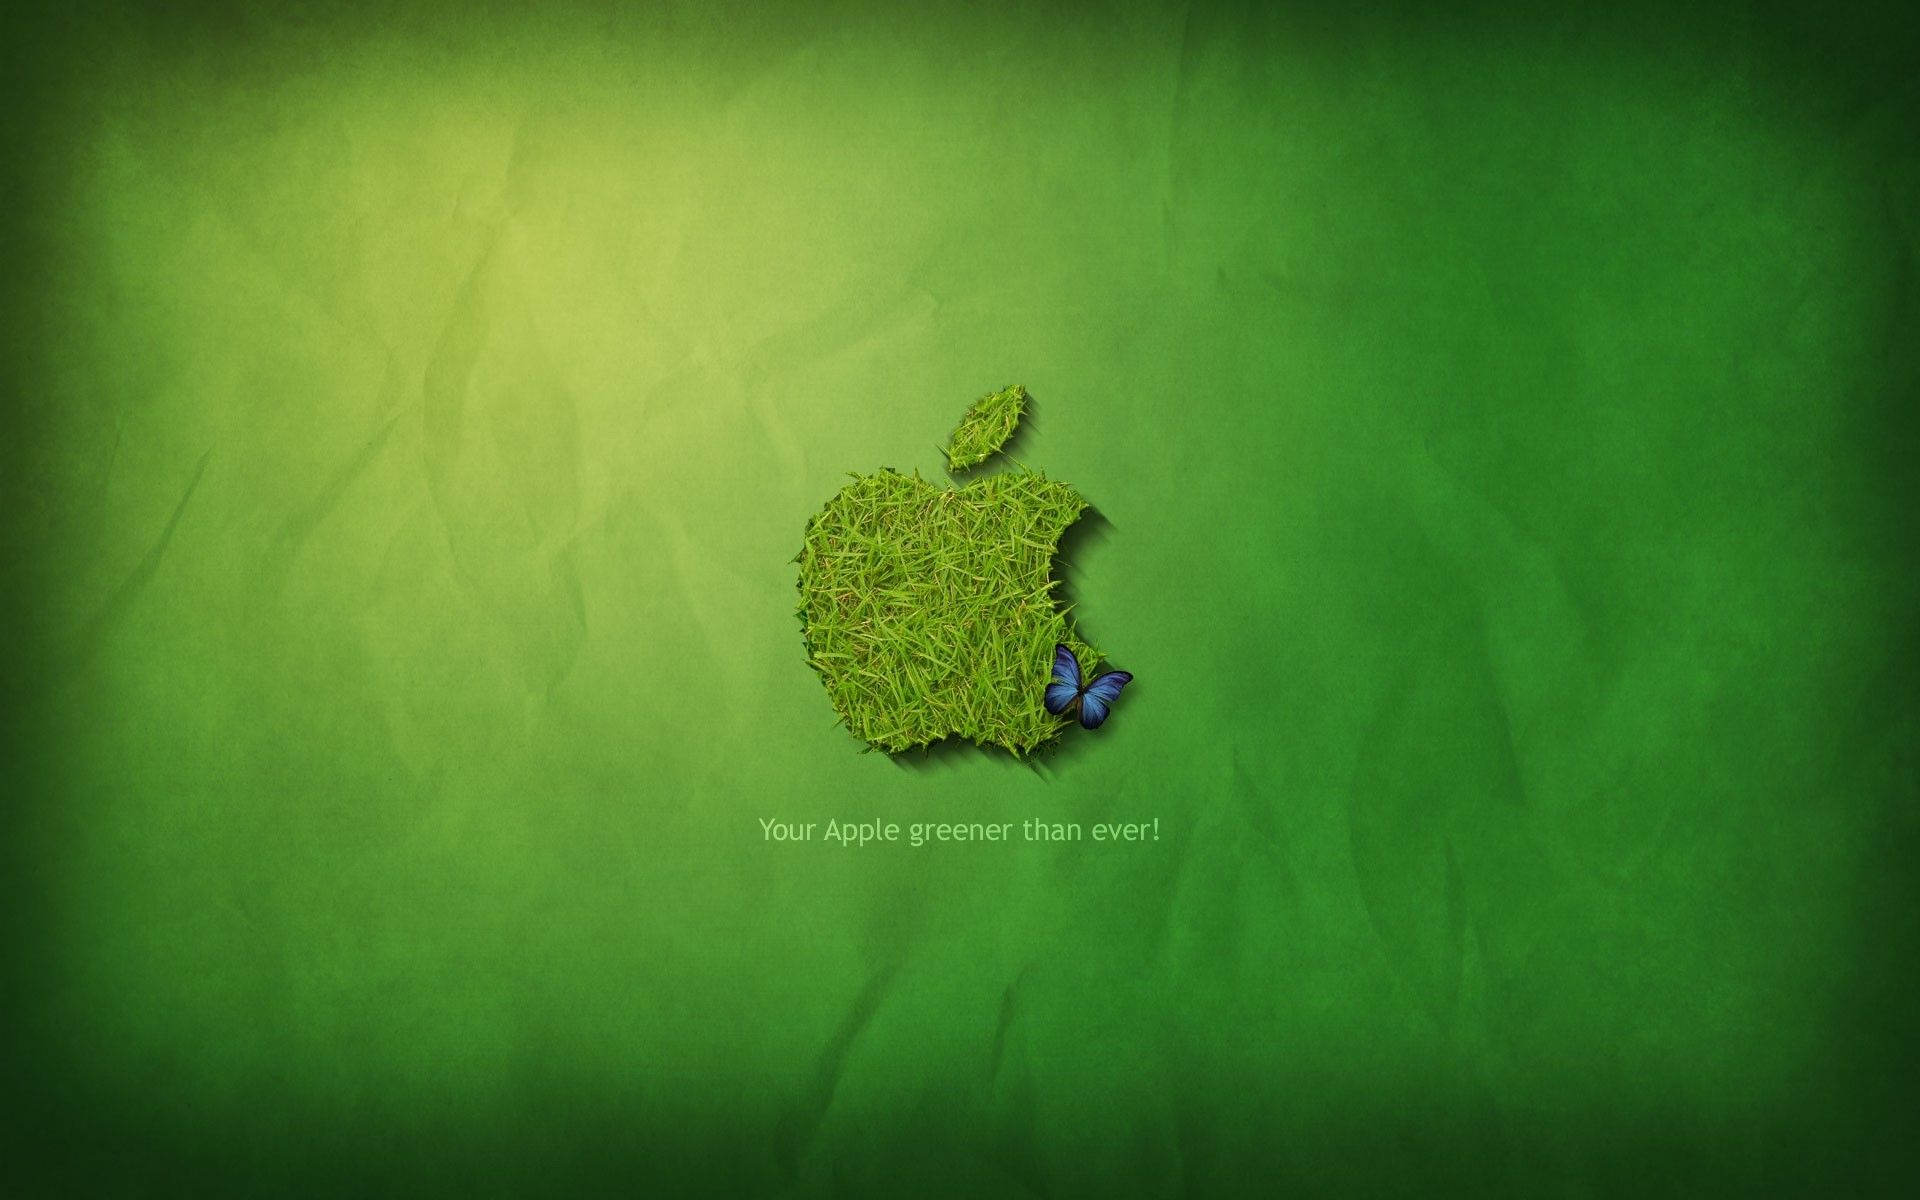 Cool Ipad Wallpaper Hd: Cool Apple Logo Wallapapers HD Wallpaper